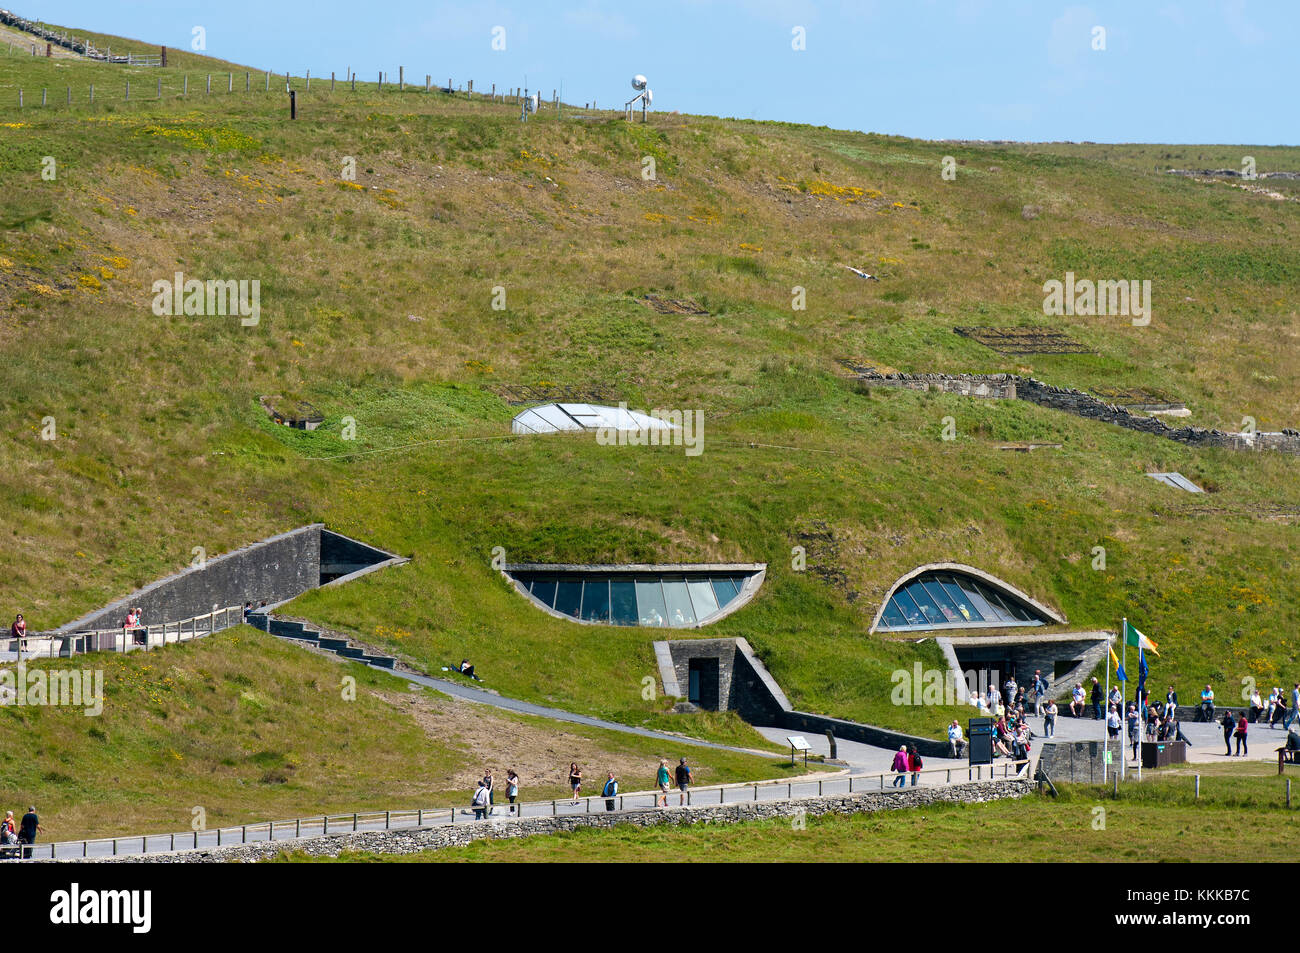 Visitor centre of the Cliffs of Moher, County Clare, Ireland - Stock Image